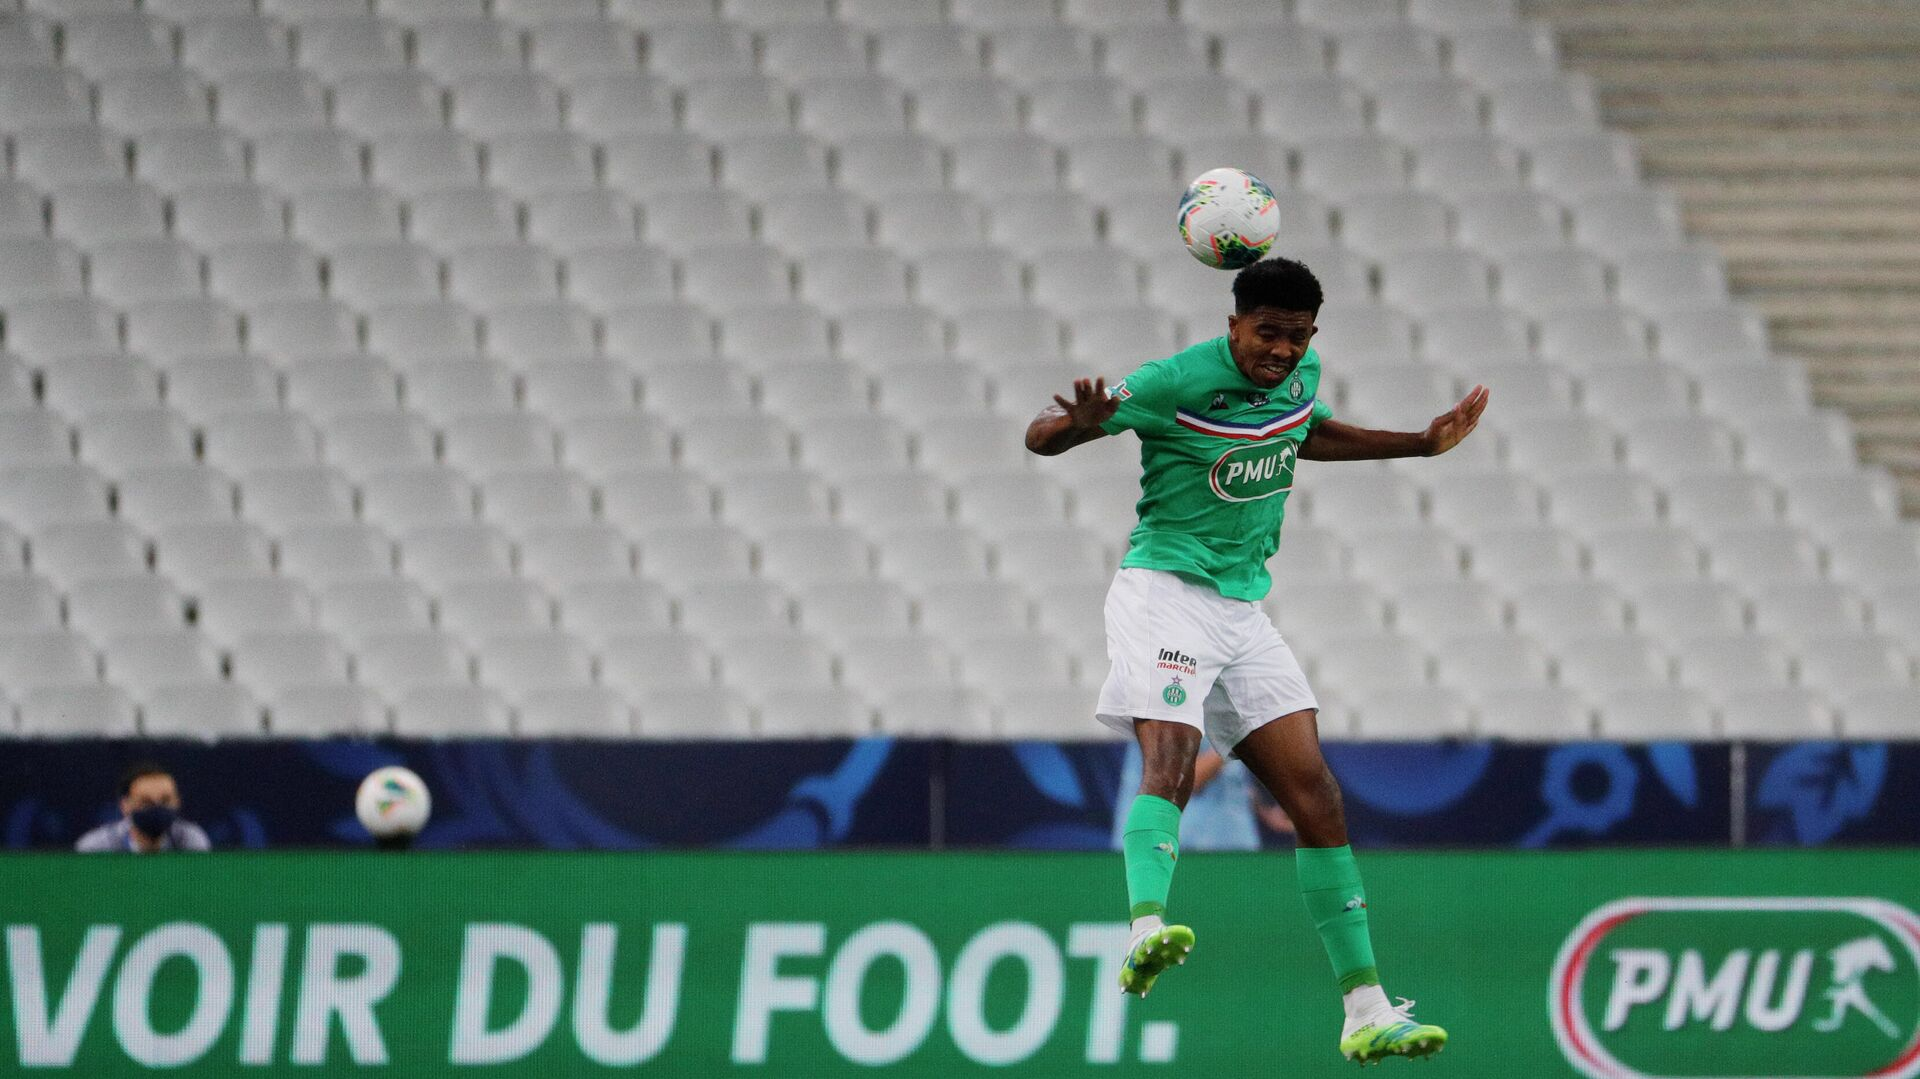 Saint-Etienne's French defender Wesley Fofana jumps for the ball  during the French Cup final football match between Paris Saint-Germain (PSG) and Saint-Etienne (ASSE) on July 24, 2020, at the Stade de France in Saint-Denis, outside Paris. (Photo by GEOFFROY VAN DER HASSELT / AFP) - РИА Новости, 1920, 24.09.2020